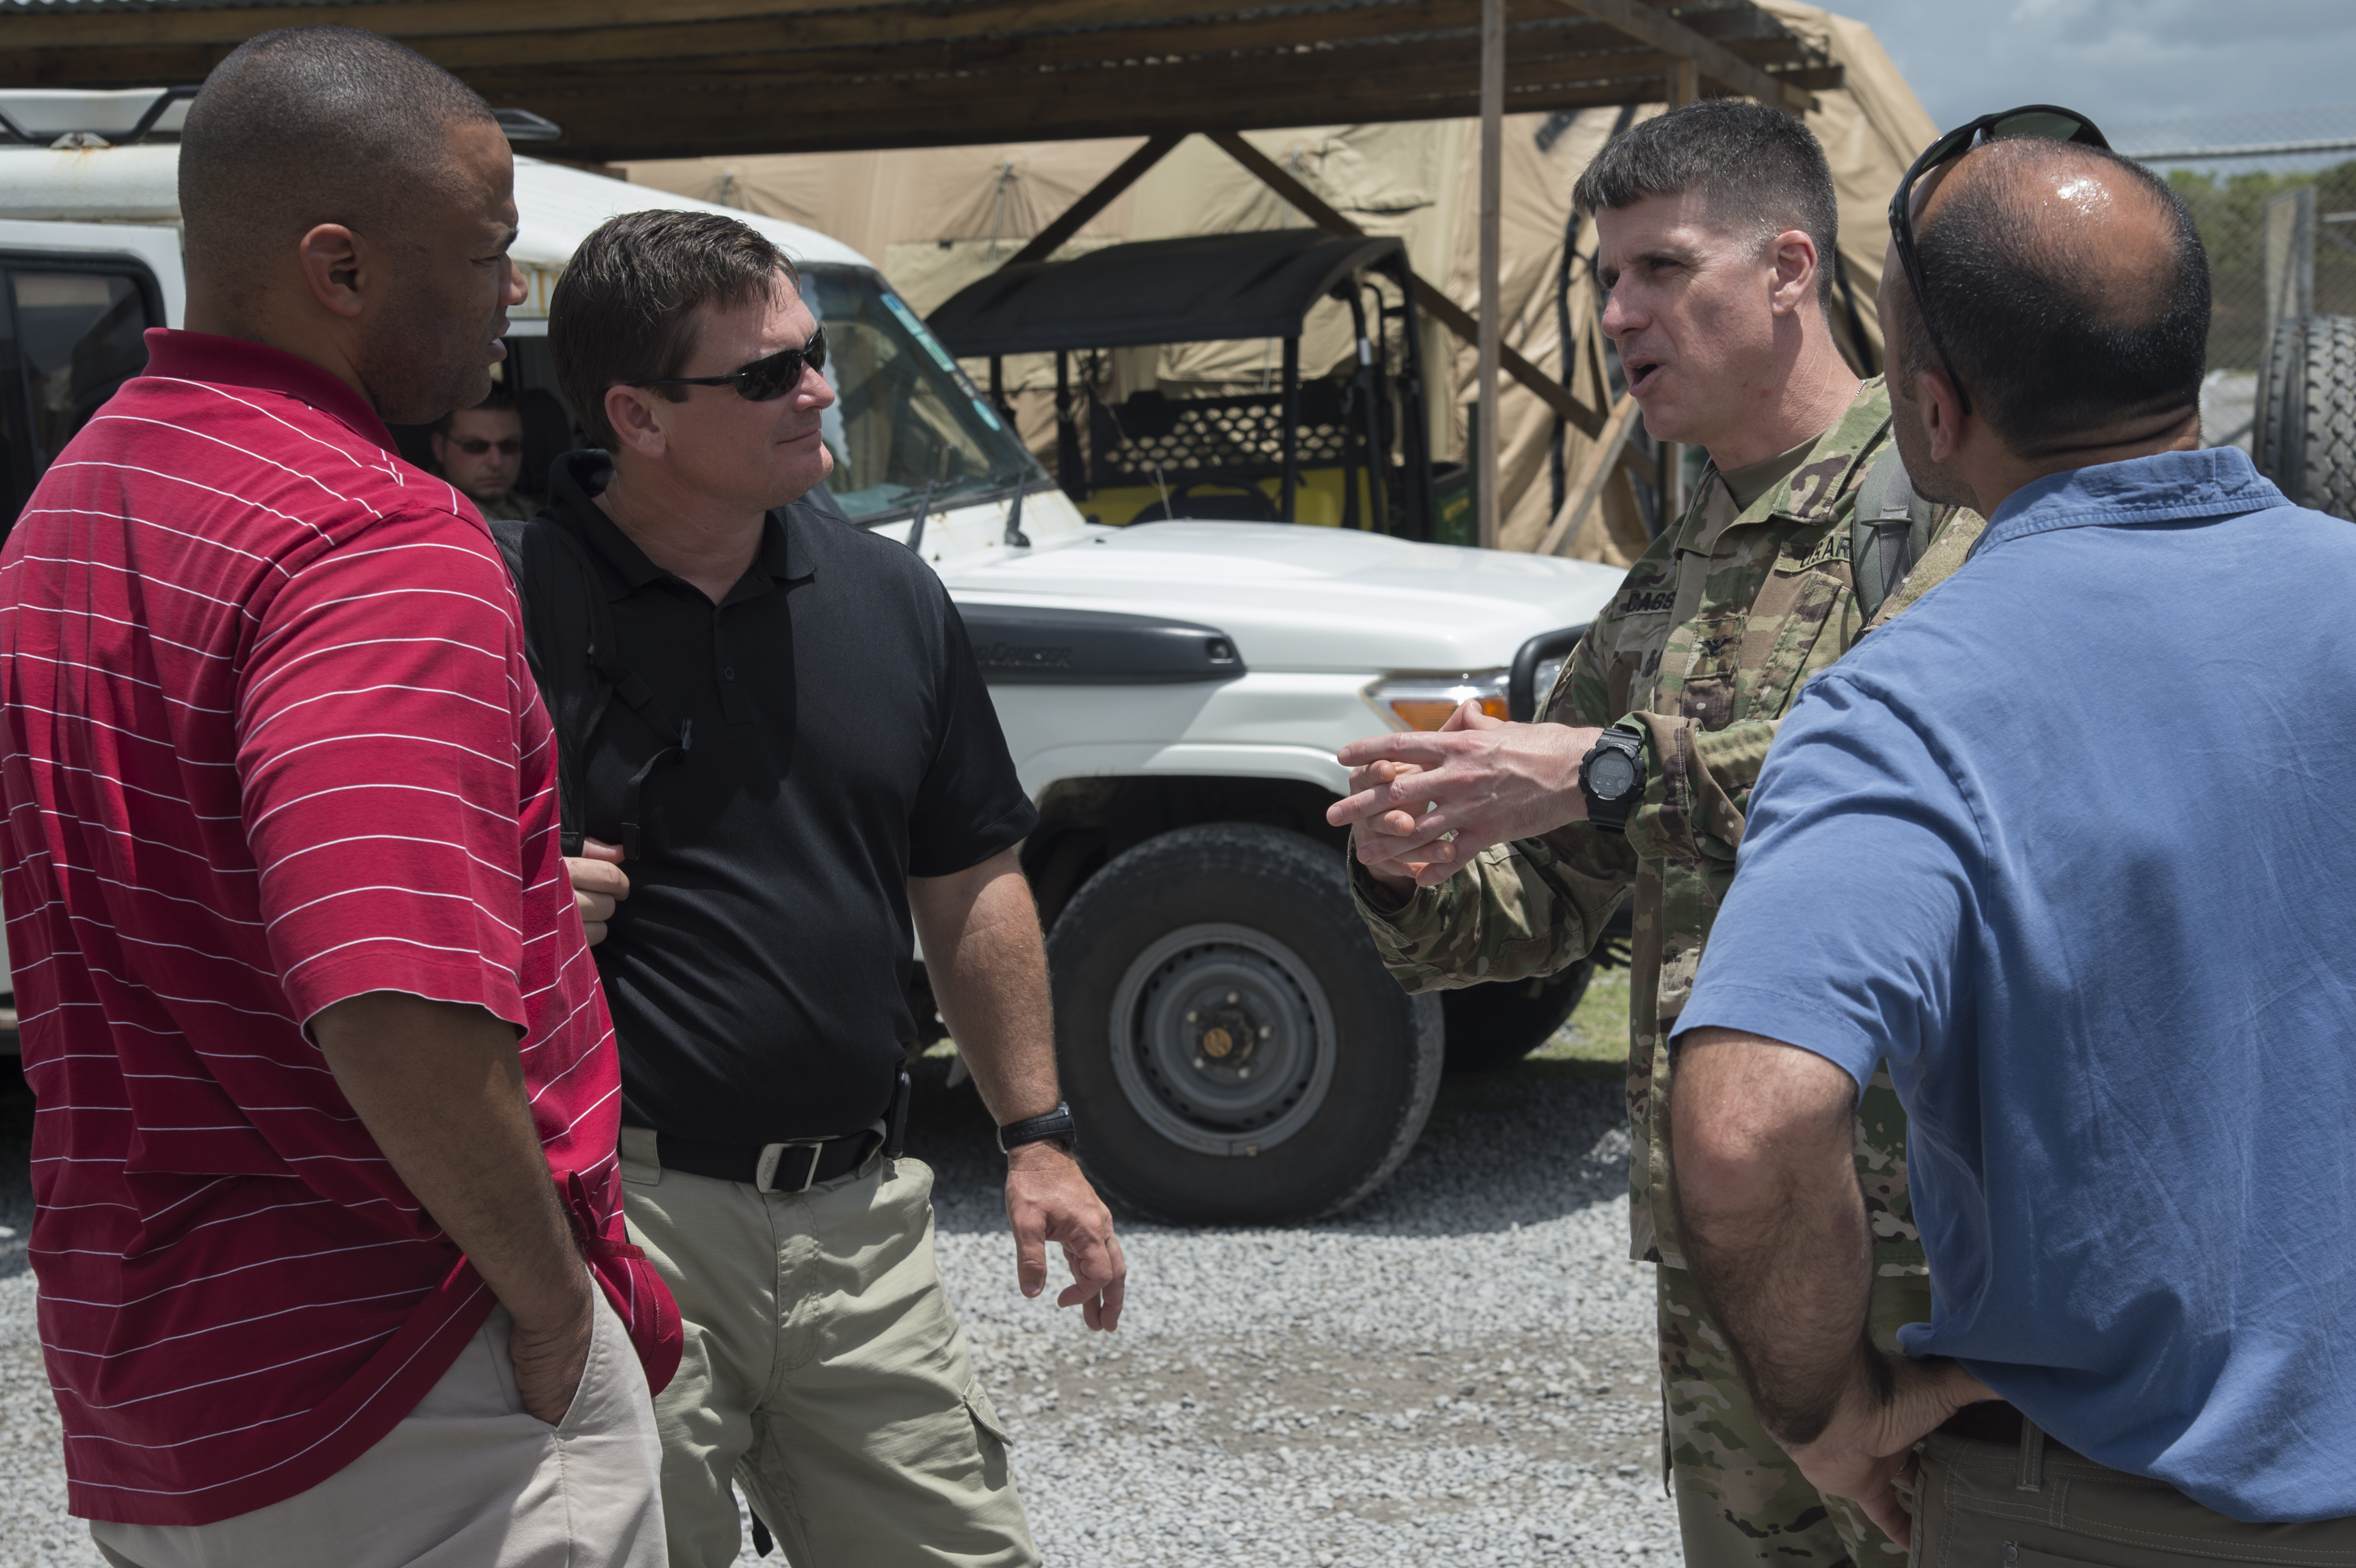 U.S. Army Col. Christopher Cassibry, director of operations for Combined Joint Task Force - Horn of Africa, speaks with members of a congressional delegation (CODEL) as they visited various locations within the CJTF-HOA area of responsibility on Aug. 27, 2017. The CODEL stayed three days at Camp Lemonnier, Djibouti, and from there traveled to various forward operating locations to meet U.S. service members and learn more about the U.S. military mission in East Africa. The CODEL included the following congressmen, all of whom are on the House Armed Service Committee; Rep. Austin Scott (R-Ga.) representing the 8th District of Georgia; Rep. Jimmy Panetta (D-Calif.) representing the 20th District of California; and Rep. Marc Veasey (D-Texas) representing the 33rd District of Texas. (U.S. Air National Guard photo by Tech. Sgt. Joe Harwood)